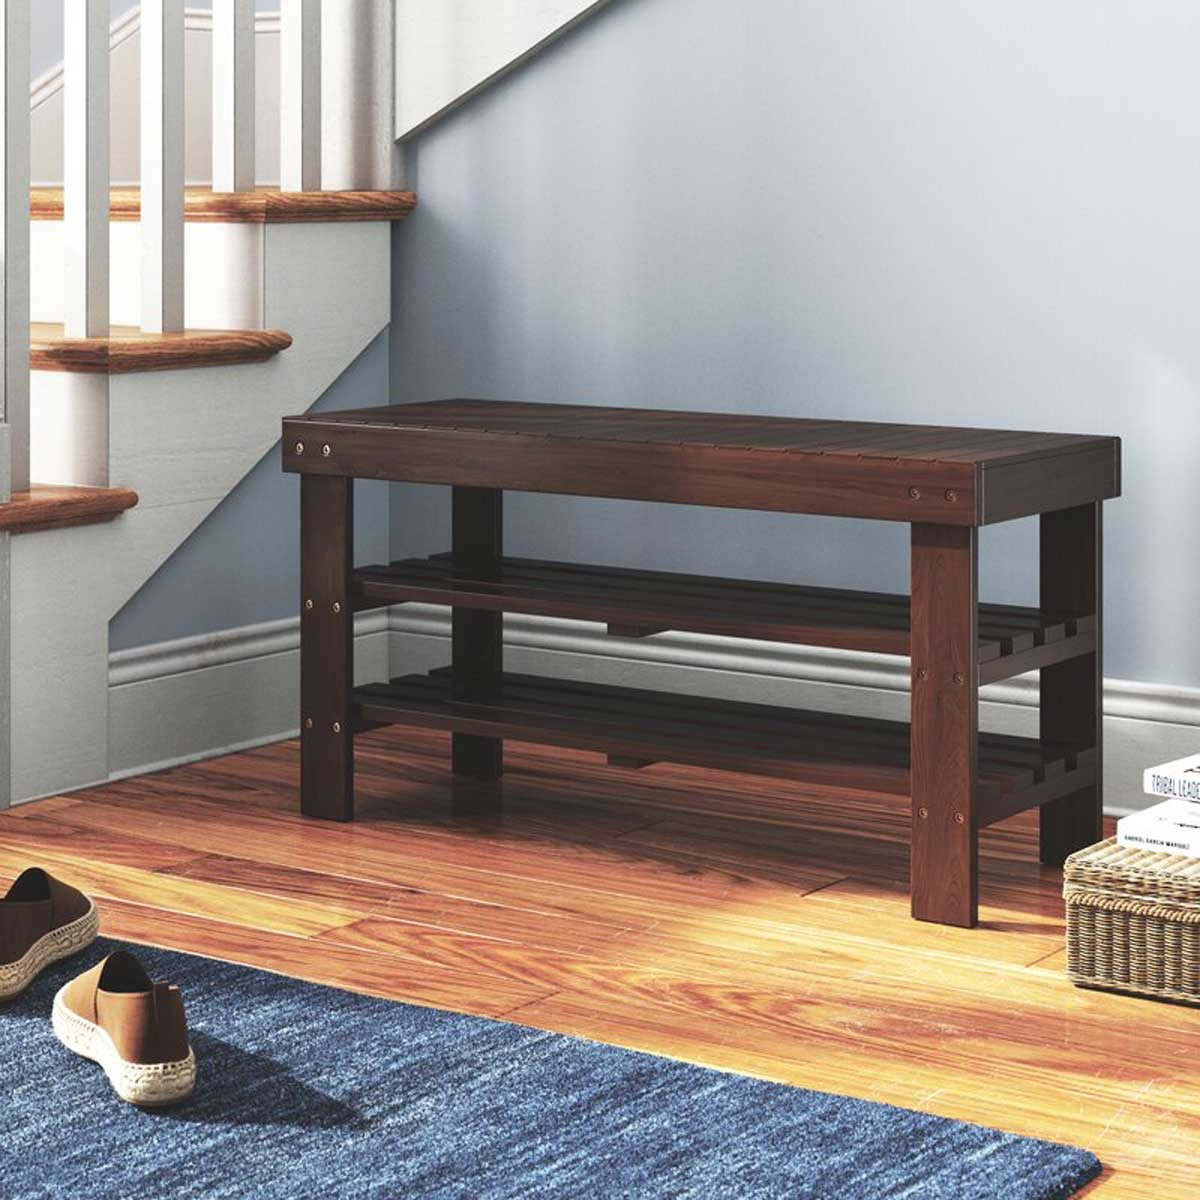 Entryway Bench Trainor+wood+shoe+storage+bench